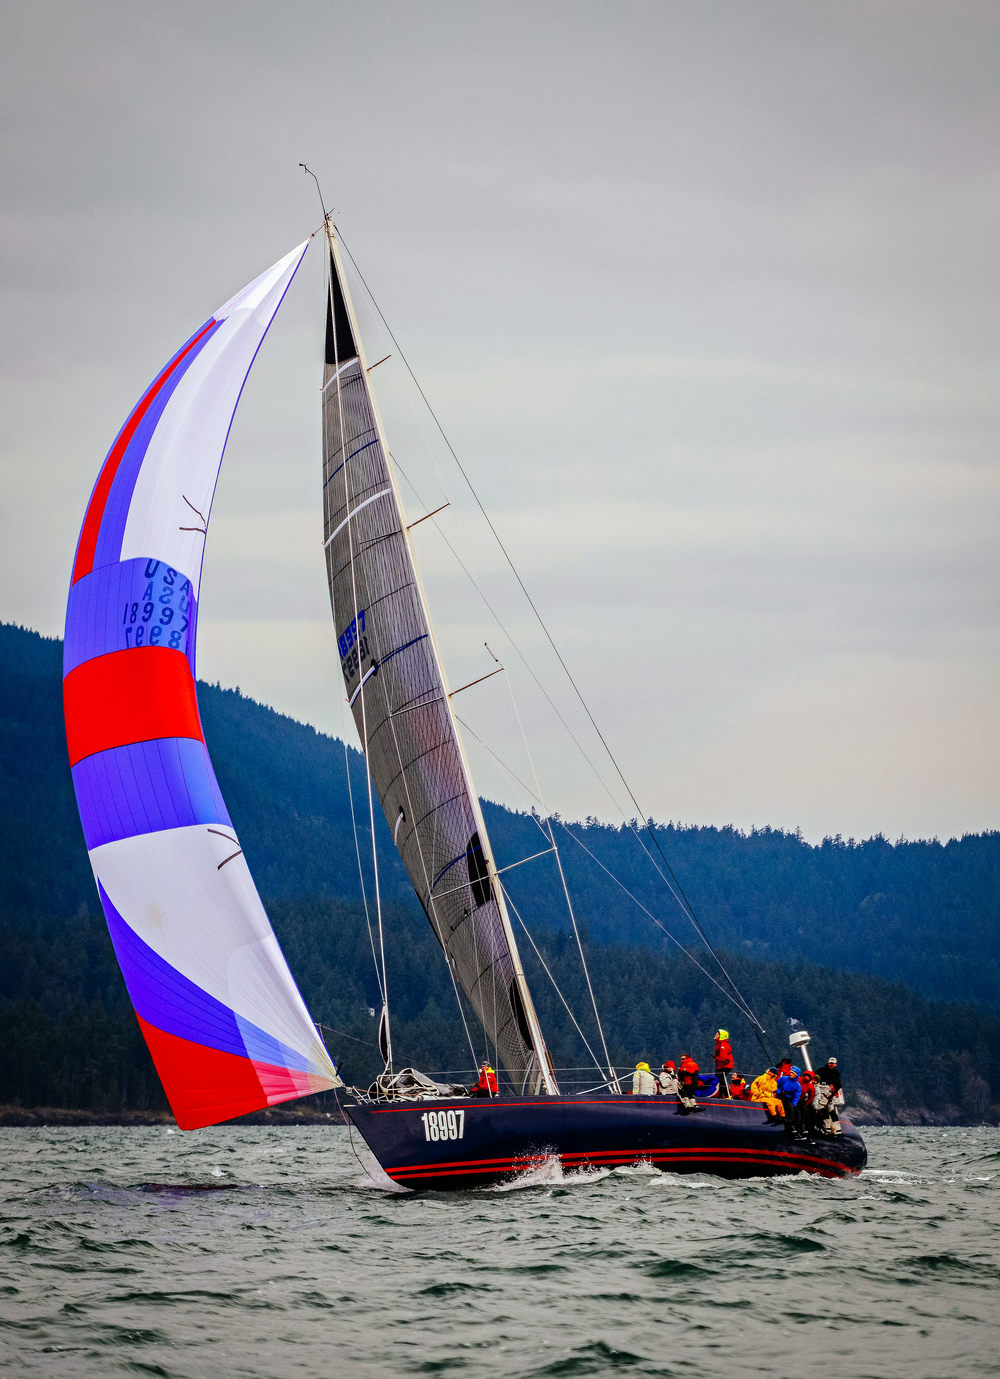 The Santa Cruz 70 WESTERLY sailing with her A4.